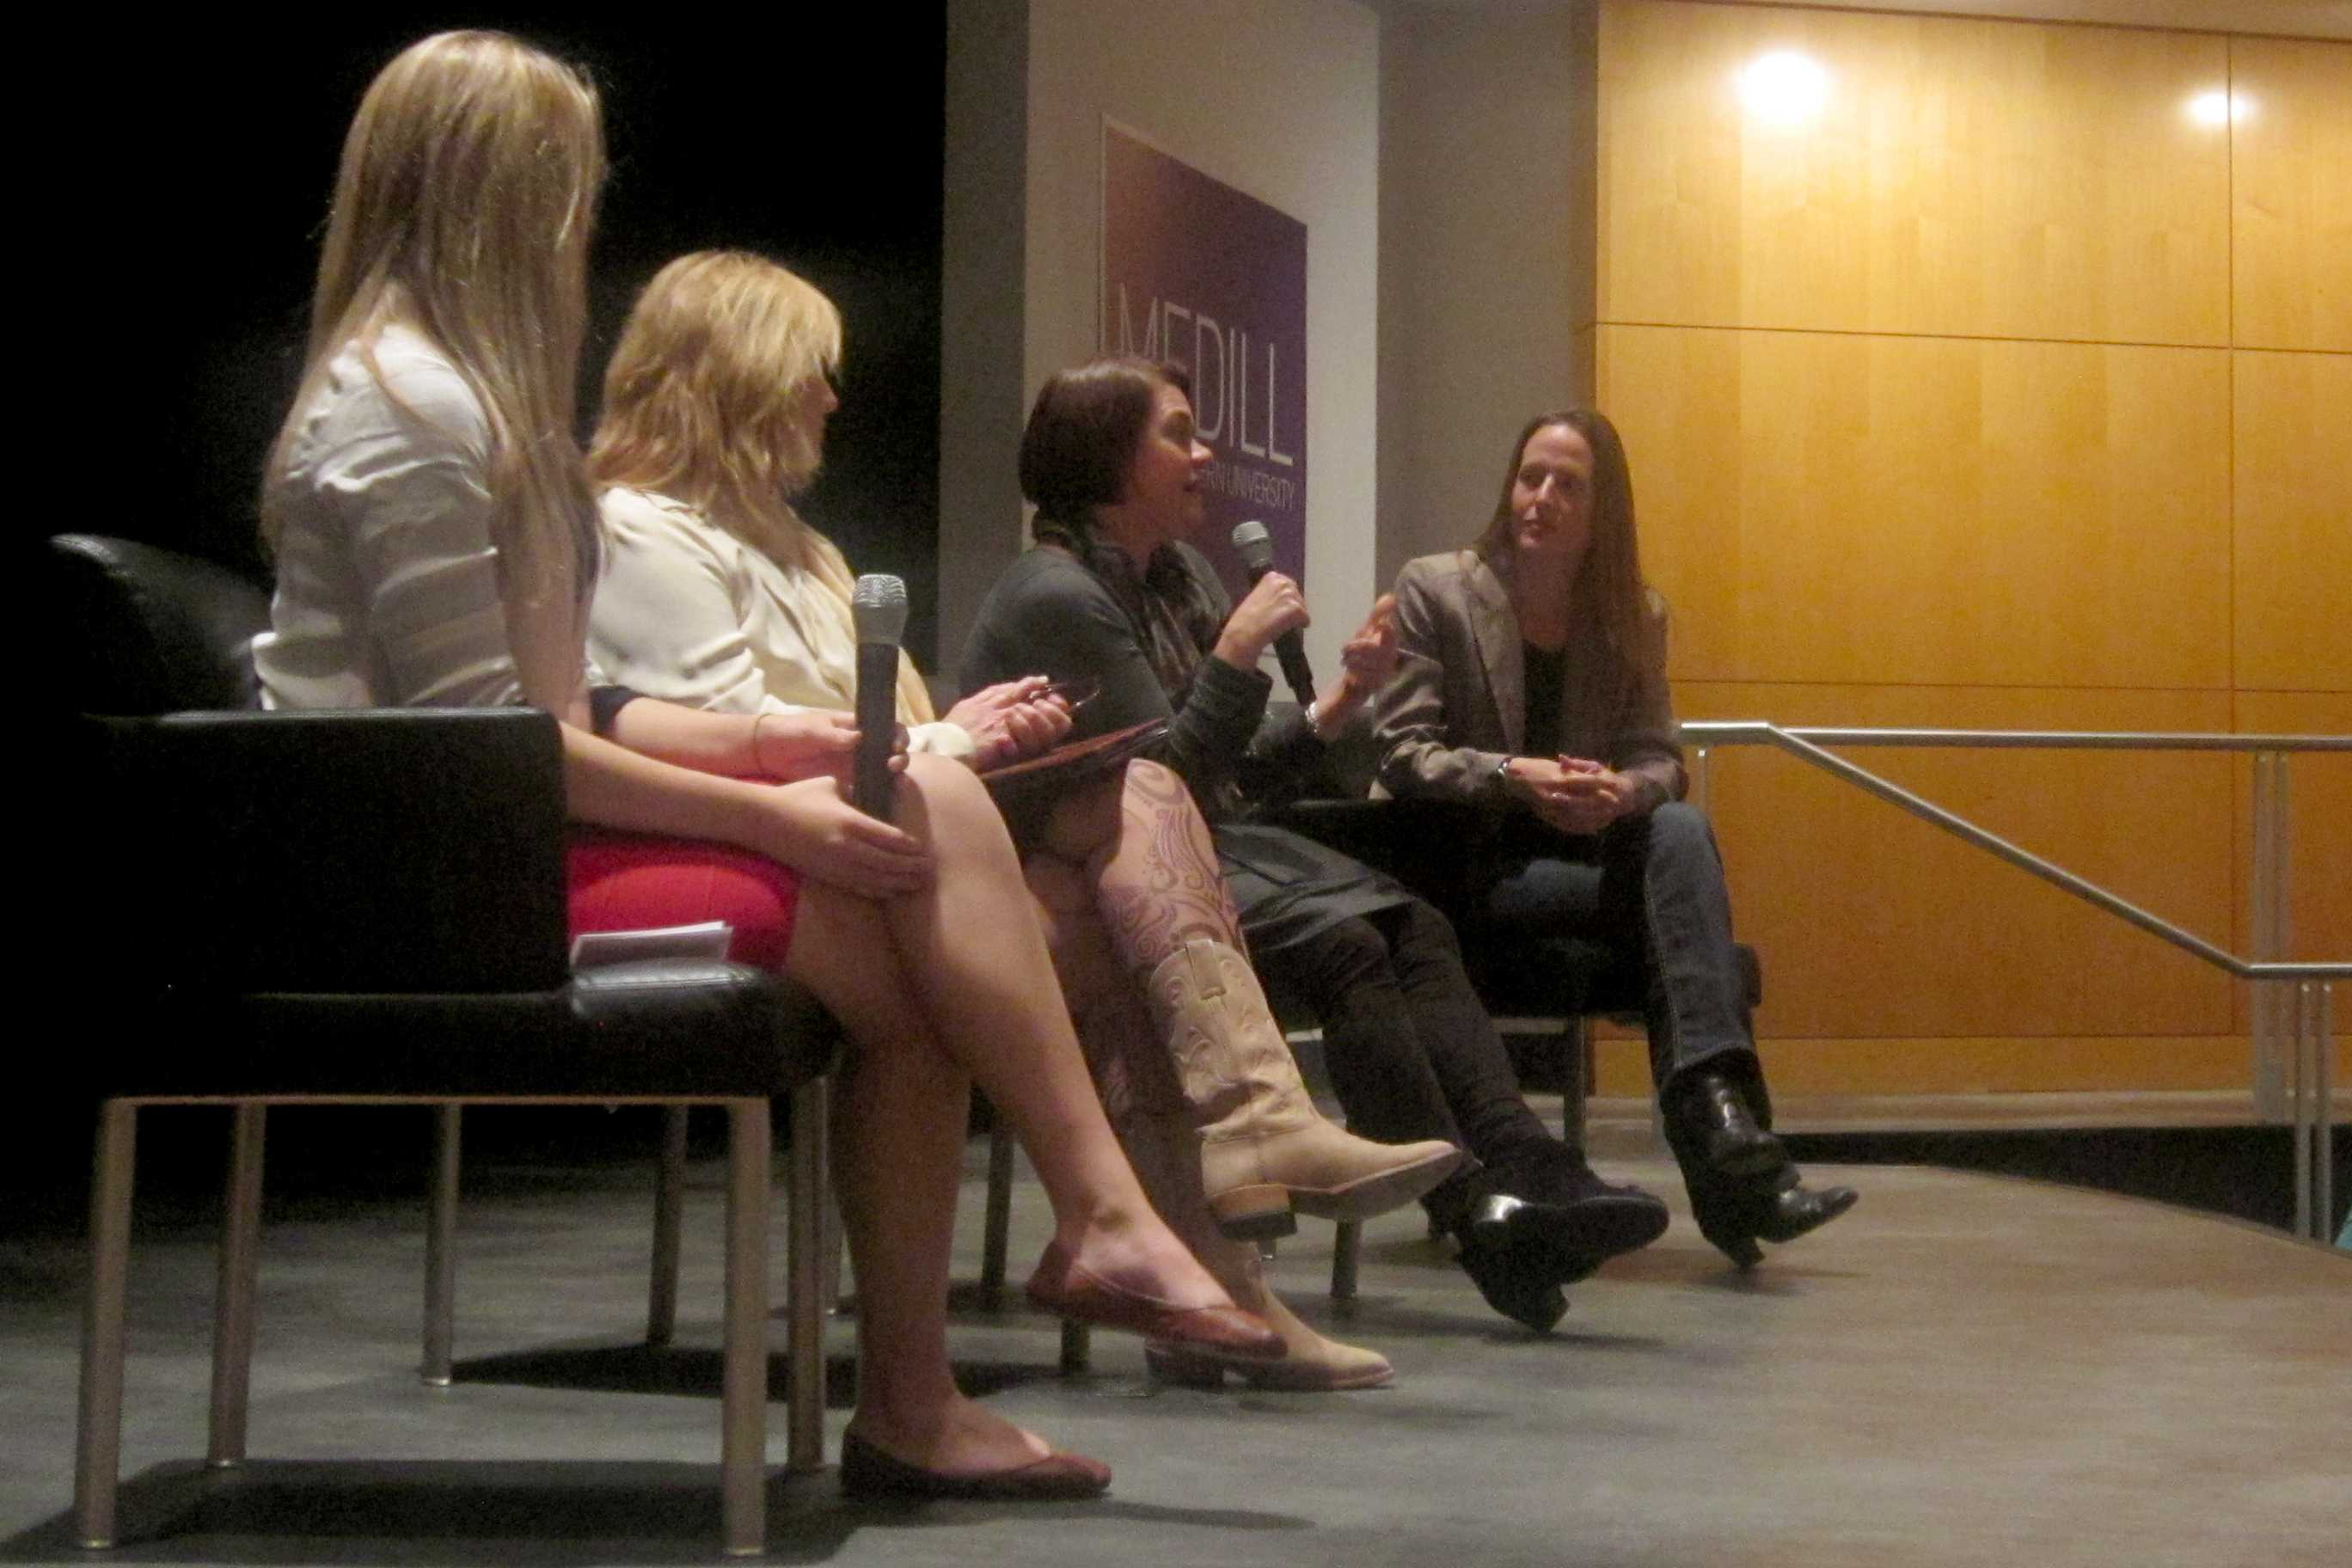 """Northwestern faculty members Renee Engeln-Maddox, Patti Wolter, Michele Weldon and a moderator (right to left) participate in a panel discussing """"Miss Representation,"""" a film about the underrepresentation of women in positions of power, on Saturday. The event was sponsored by Medill Undergraduate Student Advisory Council, A&O Productions and the Women's Center."""